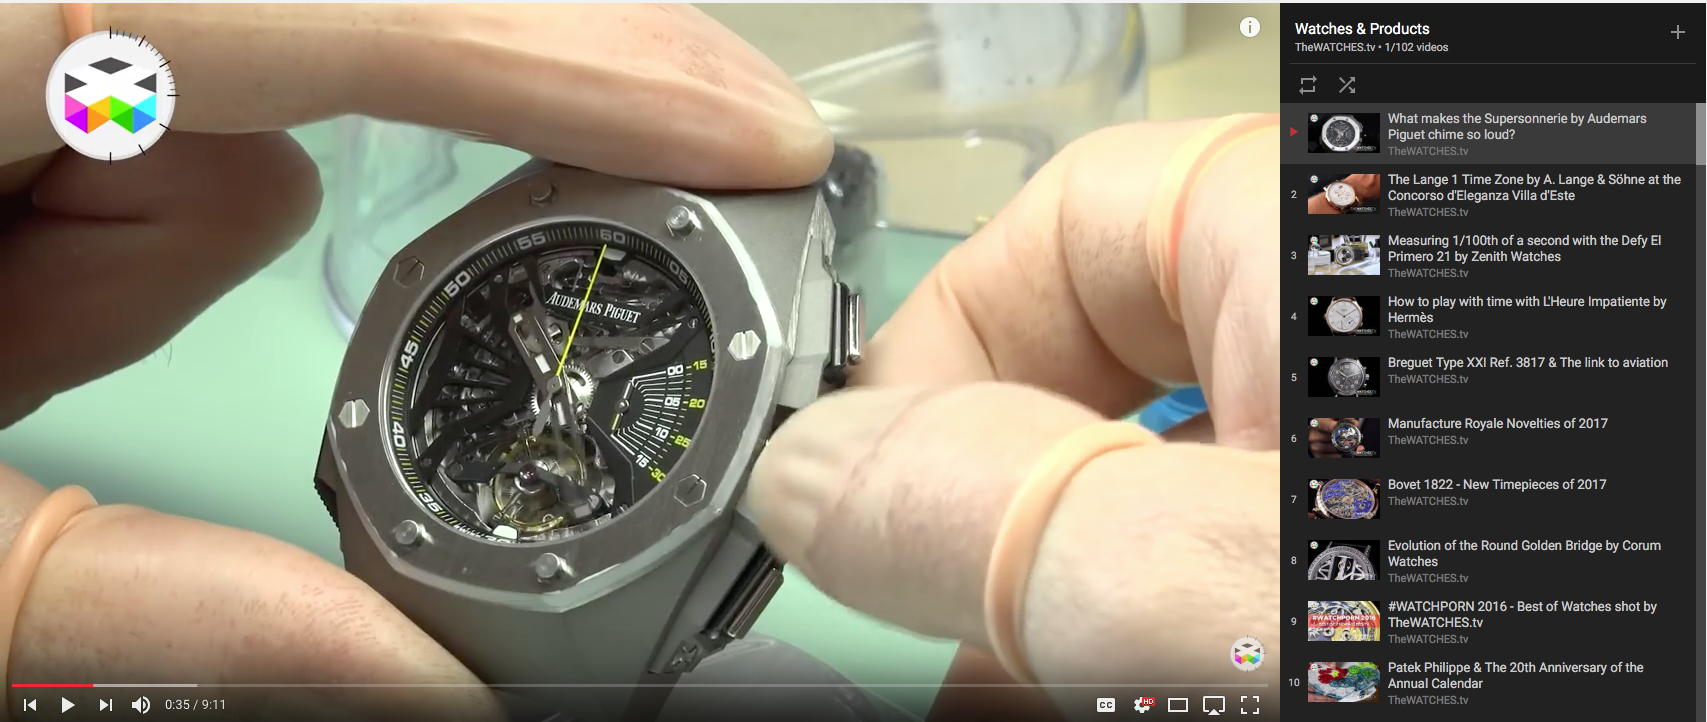 The Watches TV Product Review Playlist